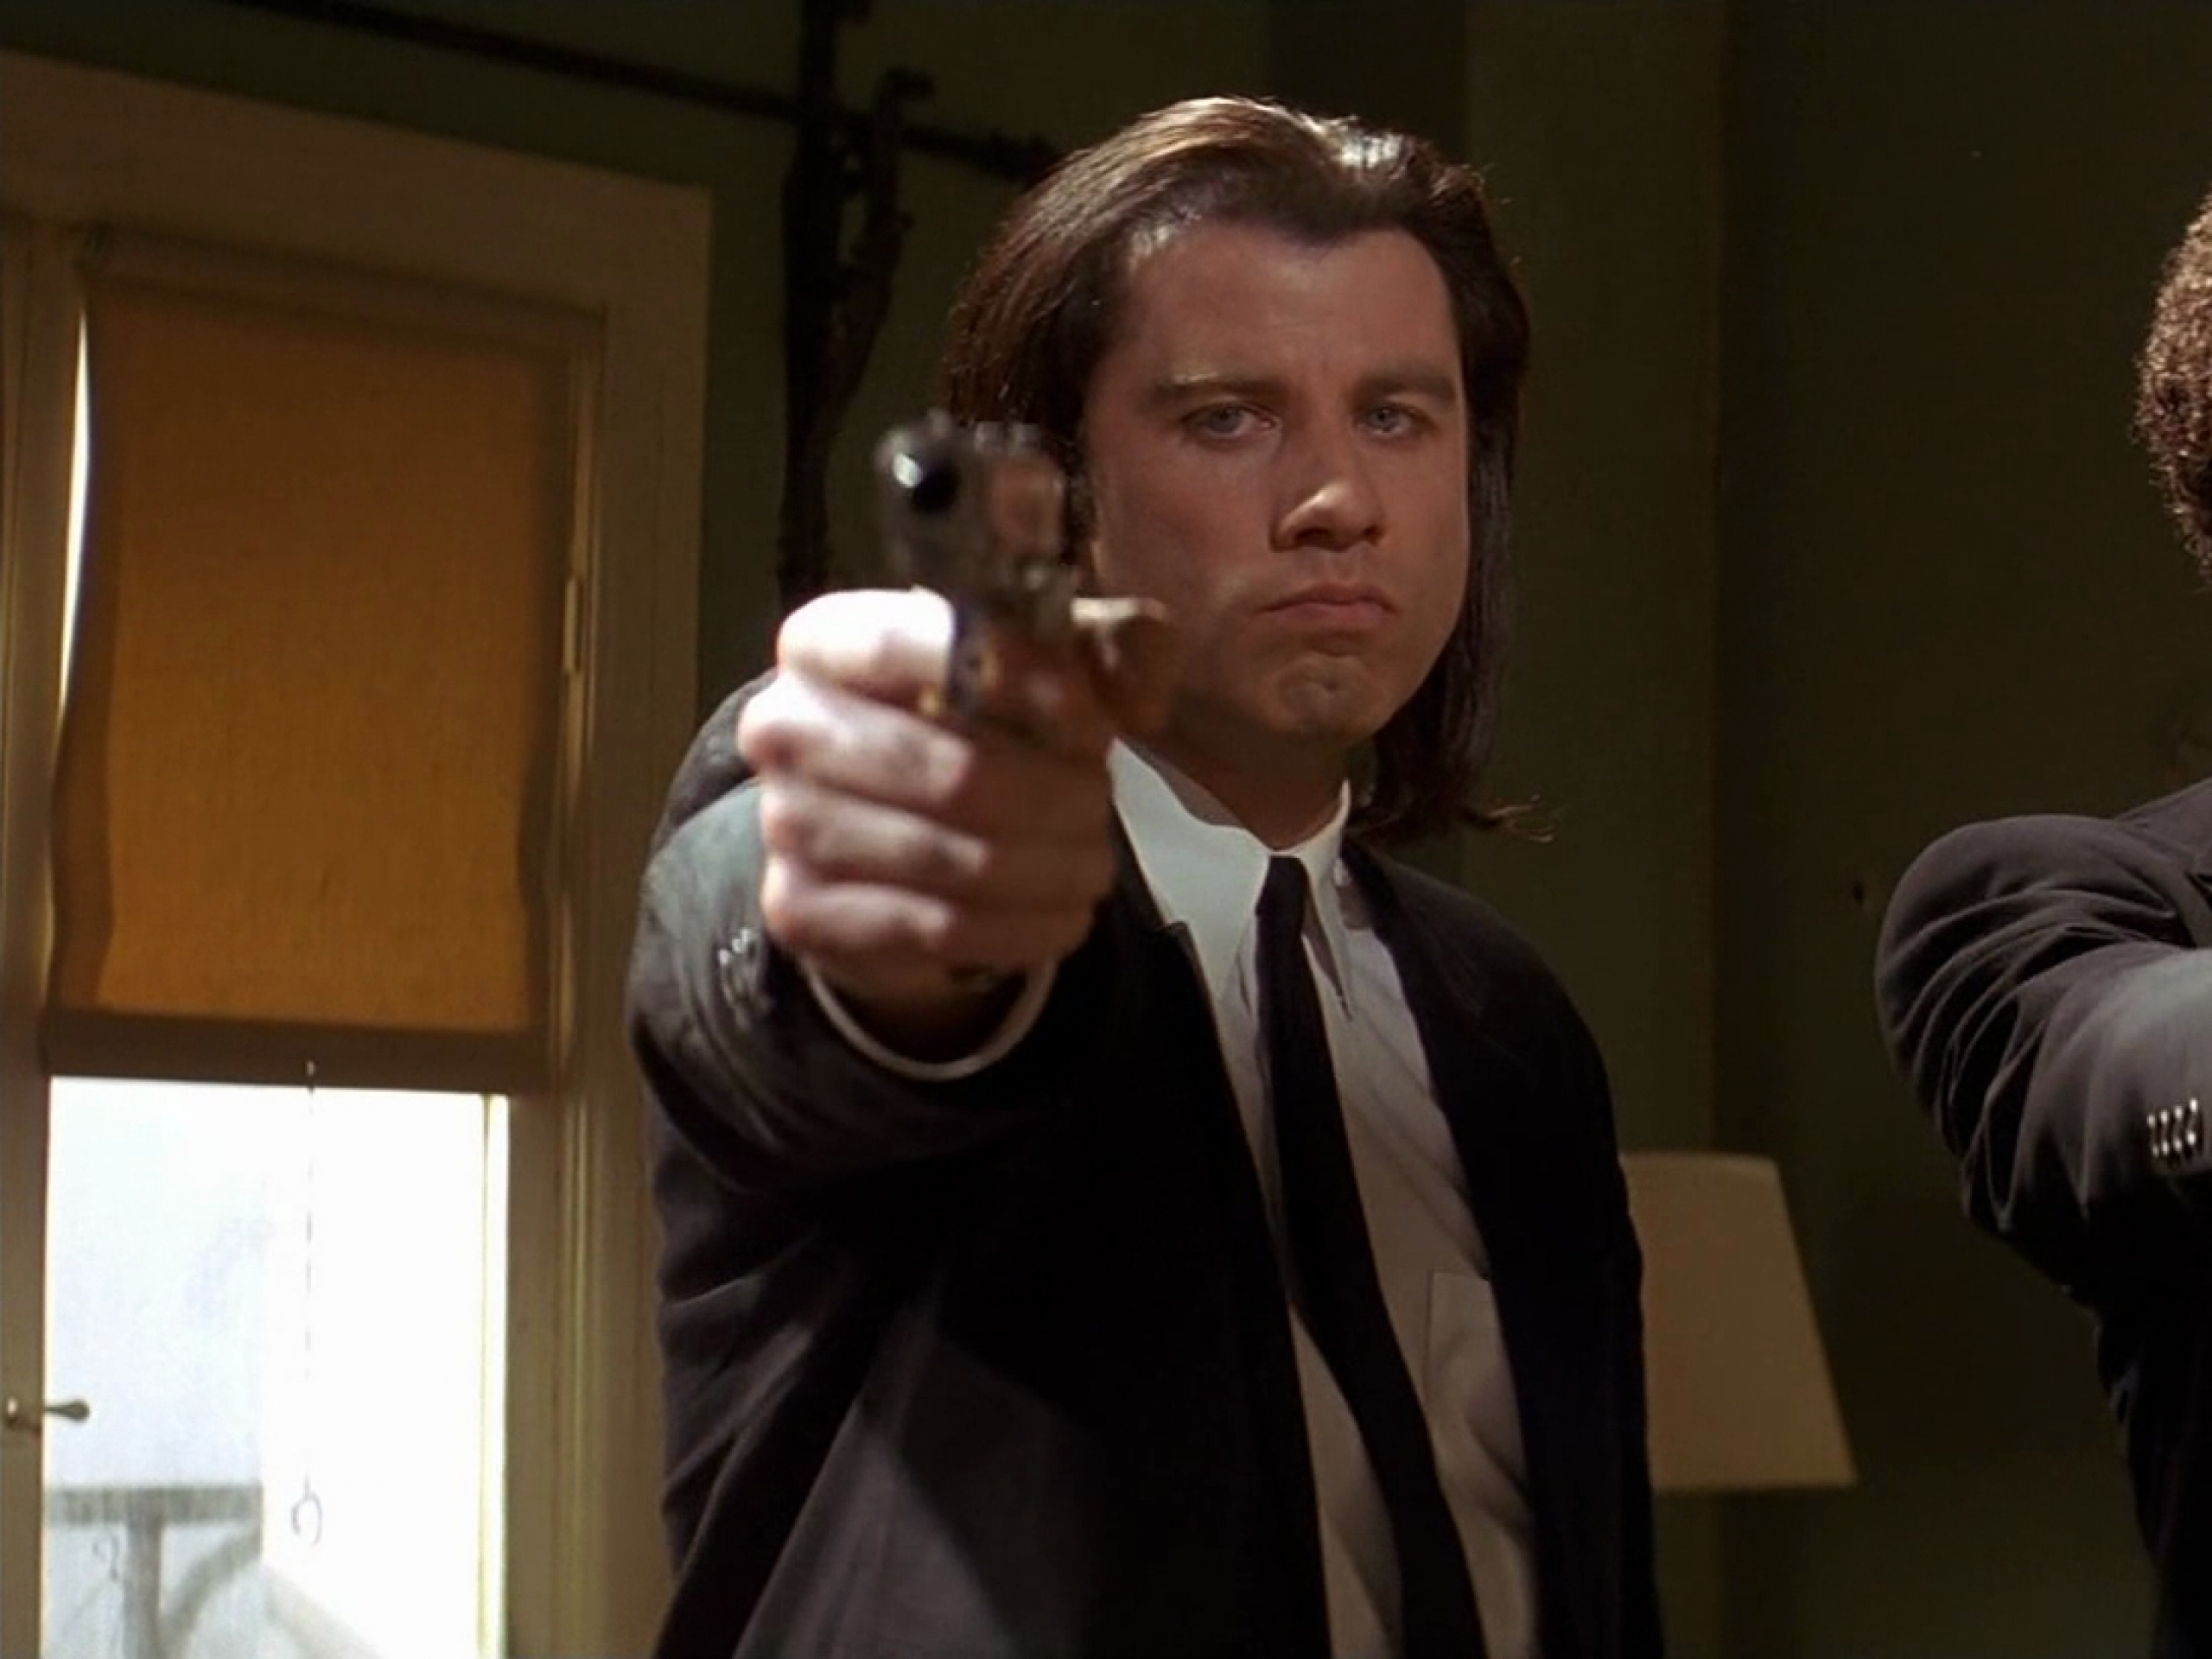 movies_pulp_fiction_samuel_l_jackson_john_travolta_1920x816_wallpaper_Wallpaper_2560x1920_www.wall321.com_.jpg